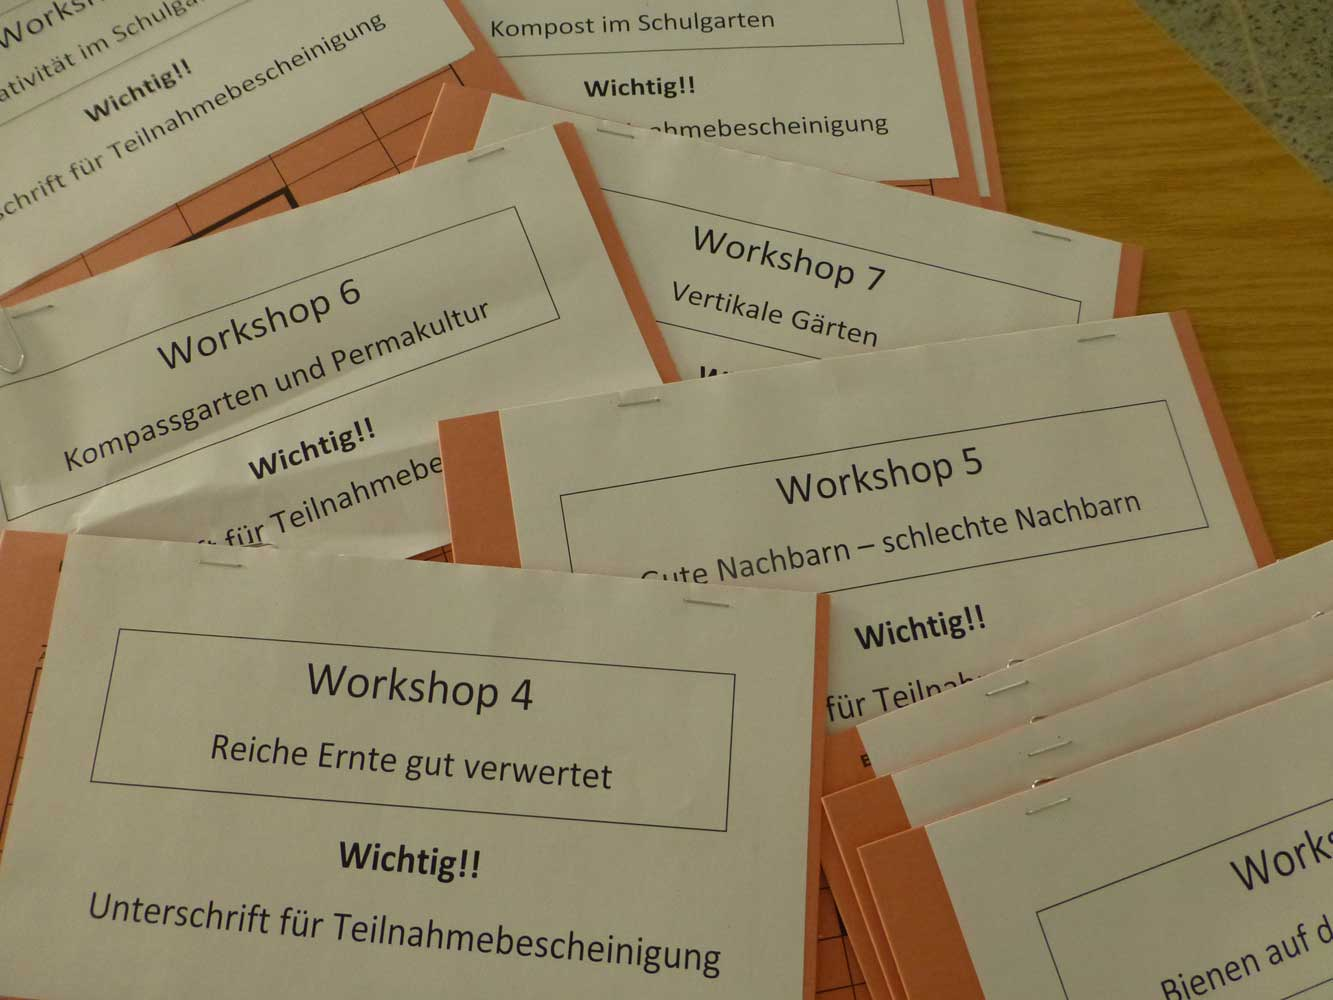 7. Schulgartentag 2019 Workshops